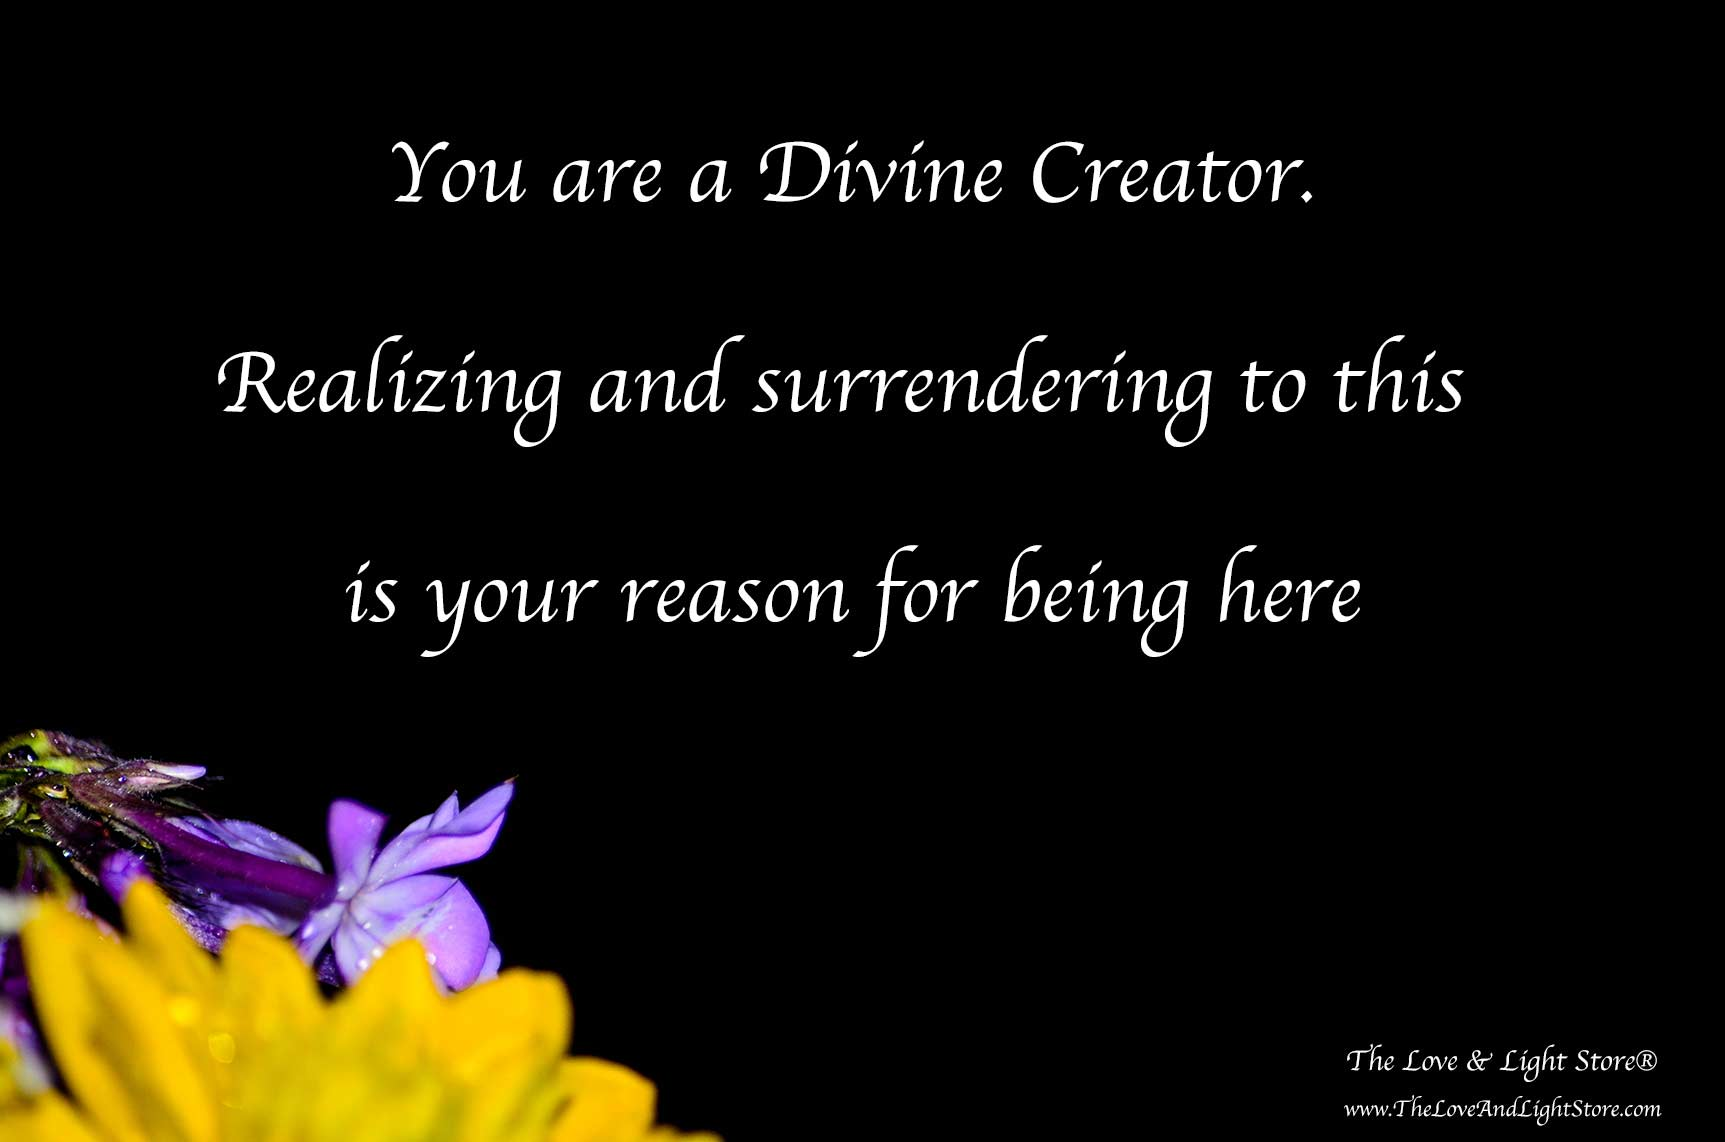 Becoming a Divine Creator is participating in the creative process in such a way that manifestation happens with ease, grace and dignity.